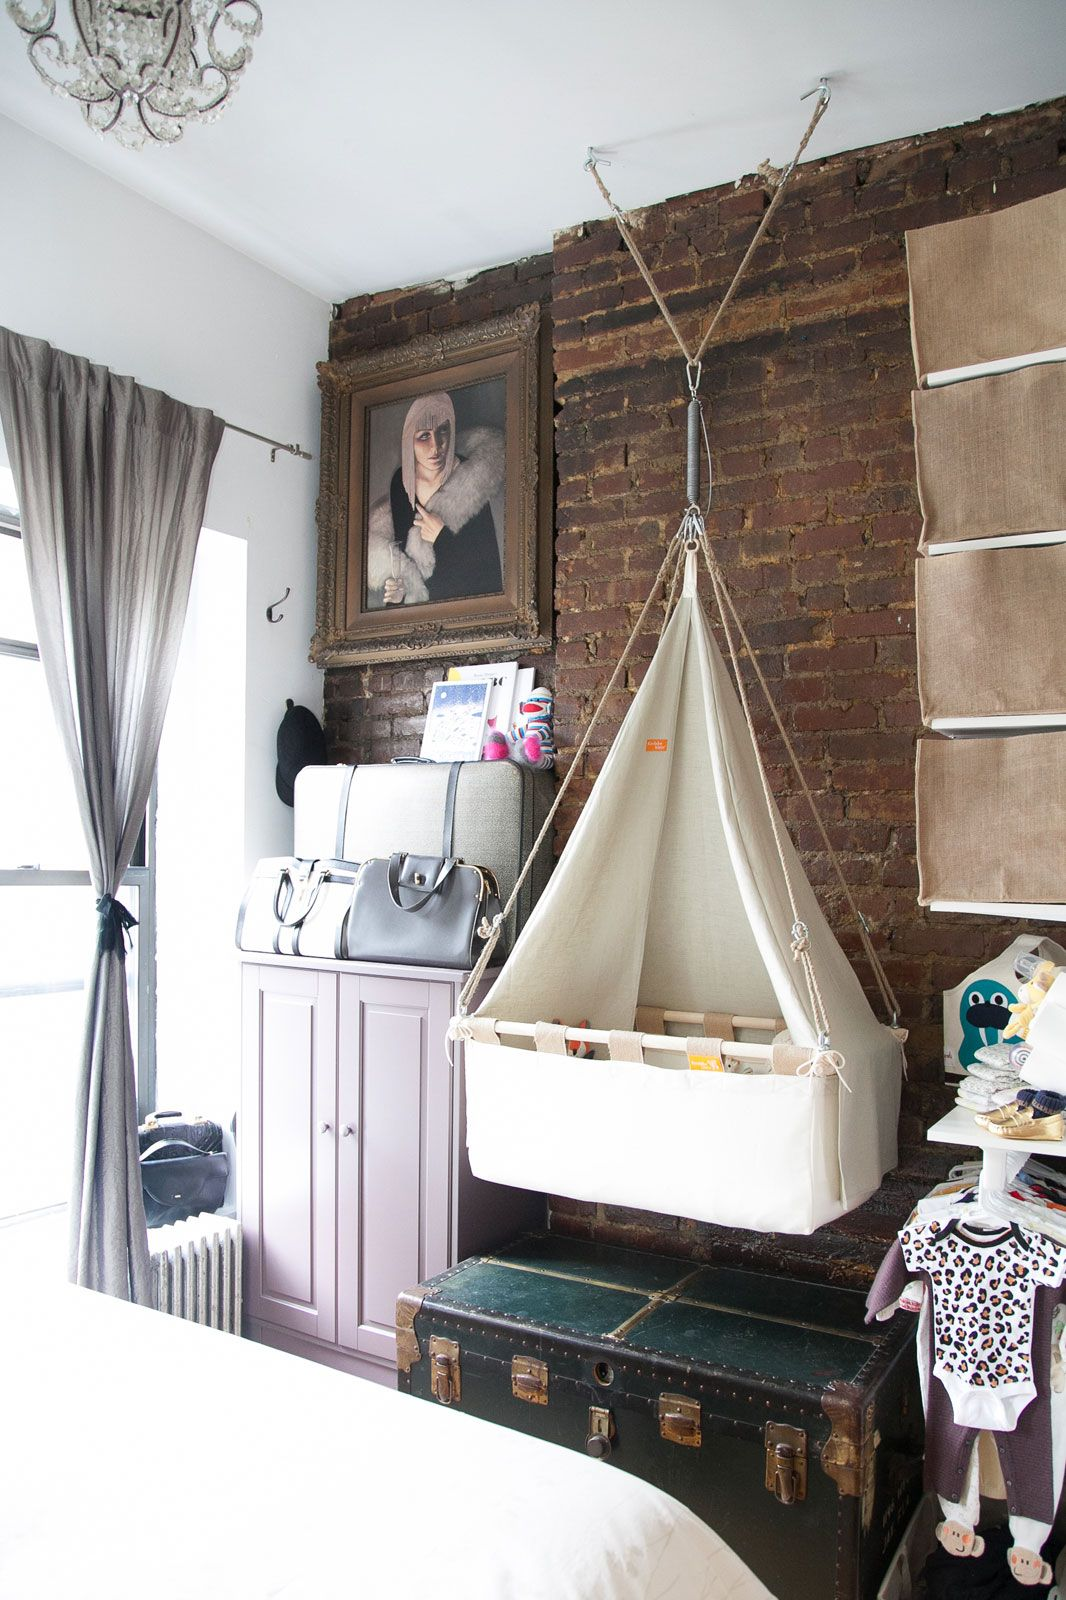 Baby room decor tips for small spaces nyc square feet nursery